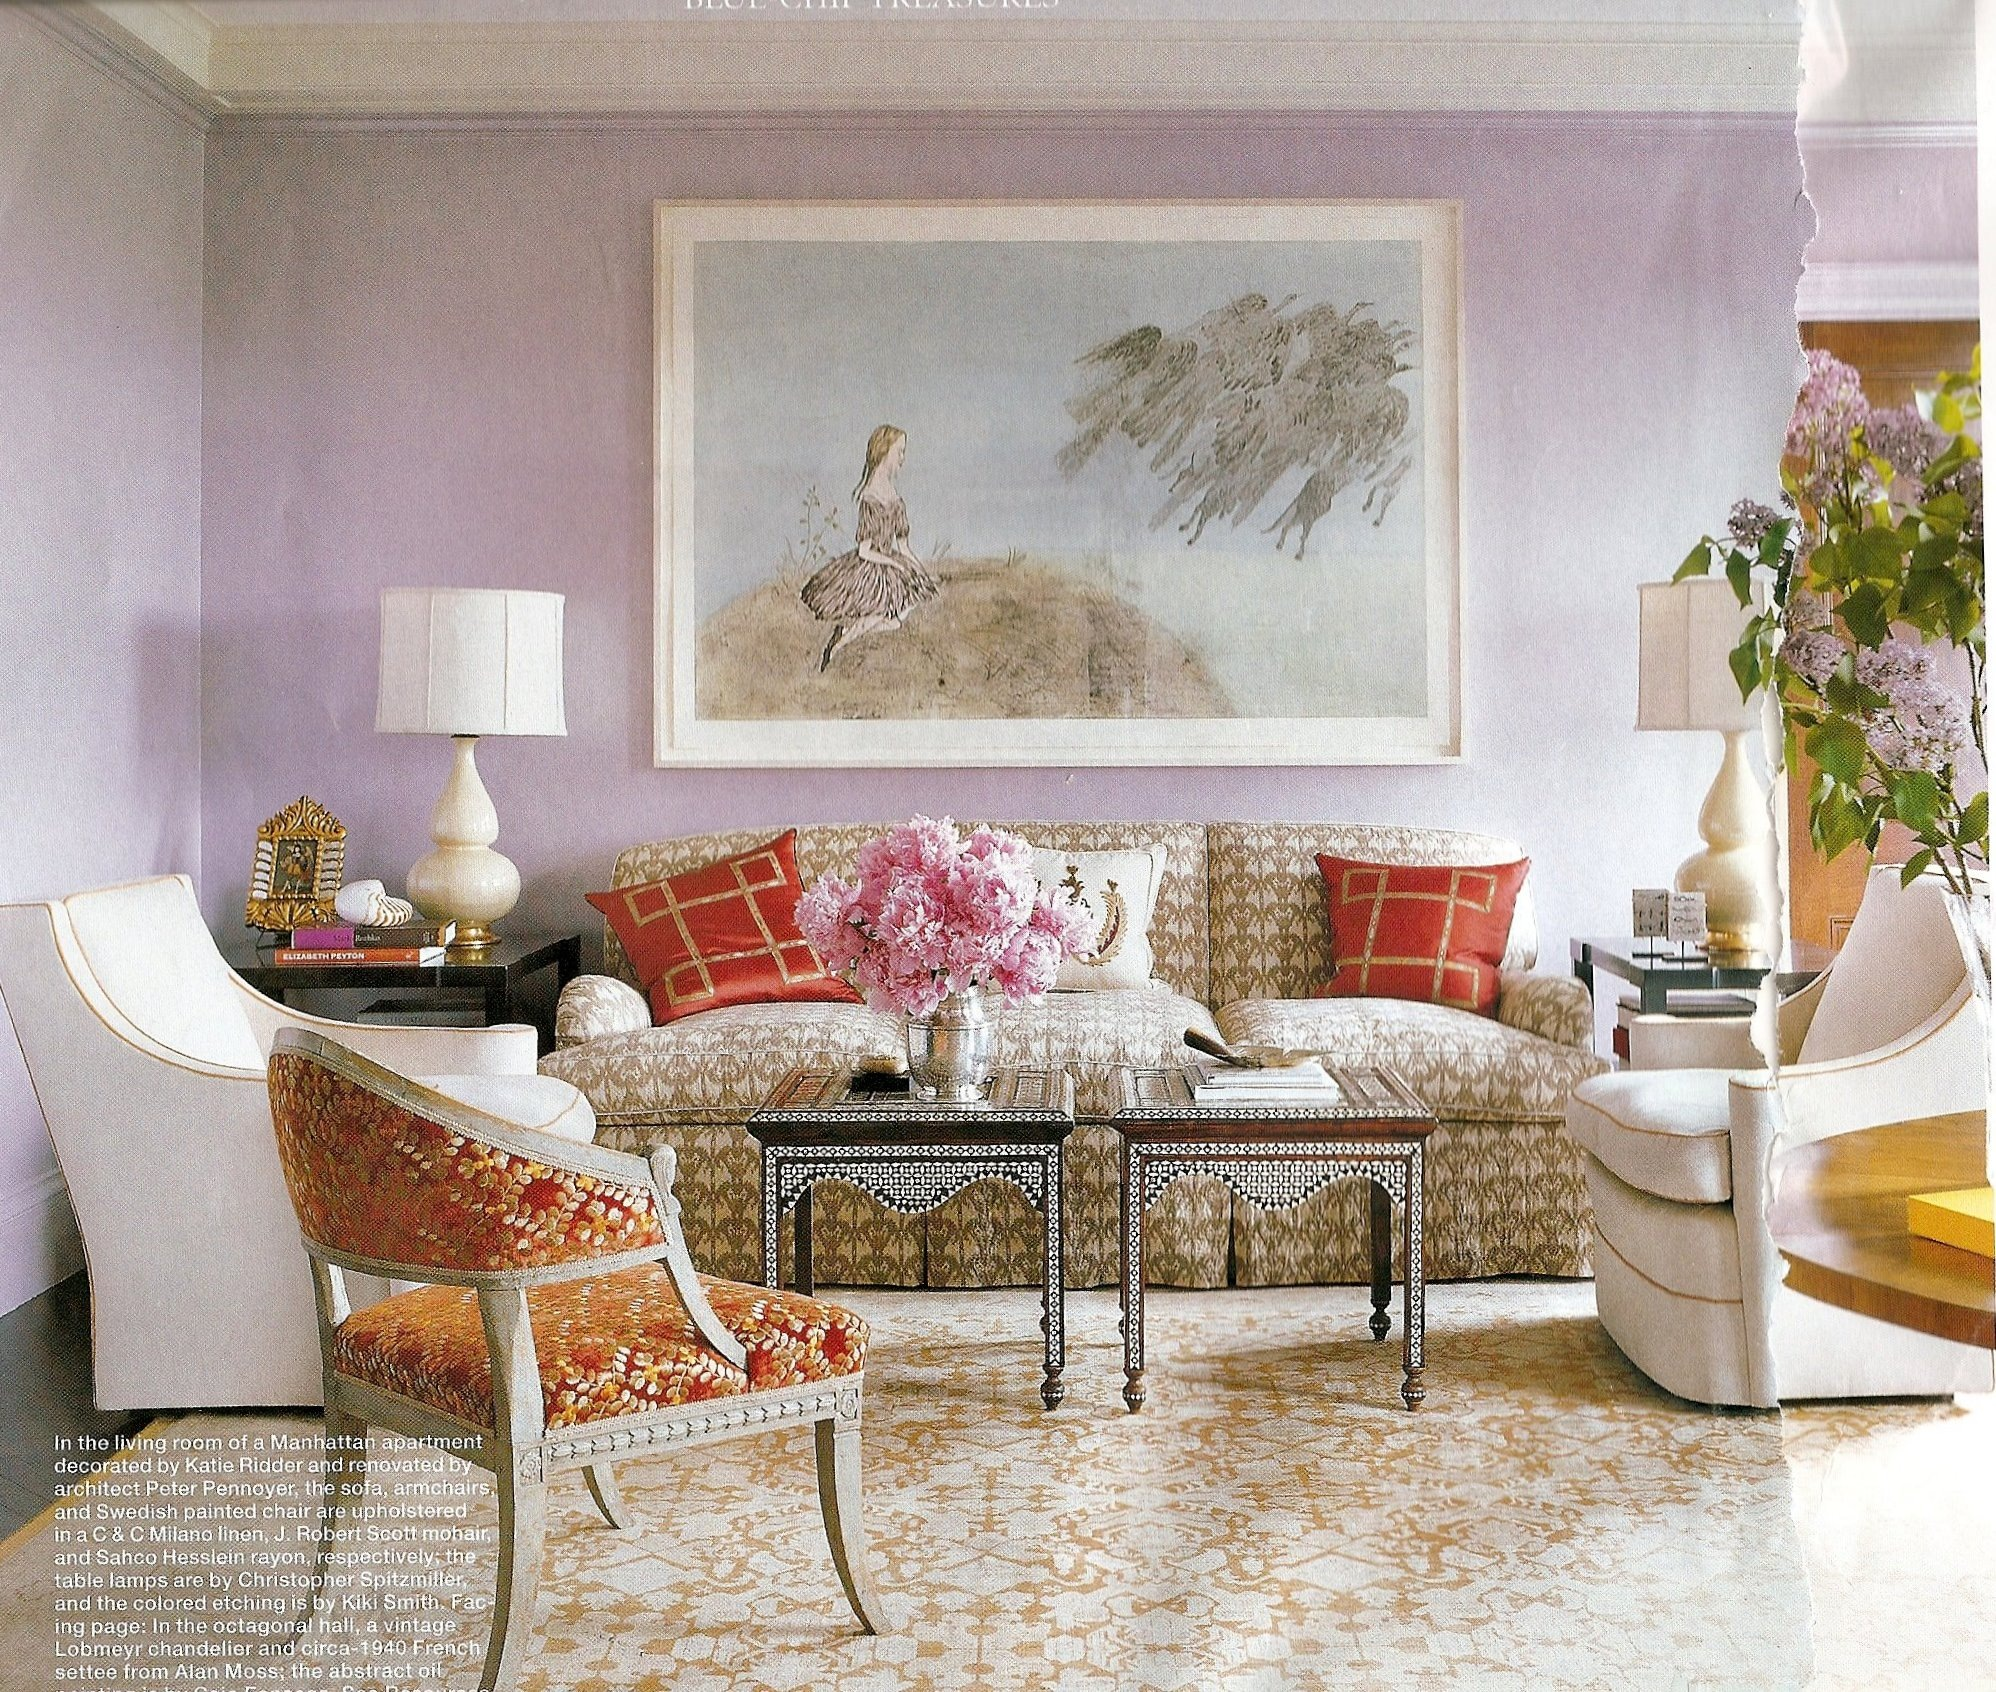 Interiors Furniture & Design: Living Rooms Elle Decor